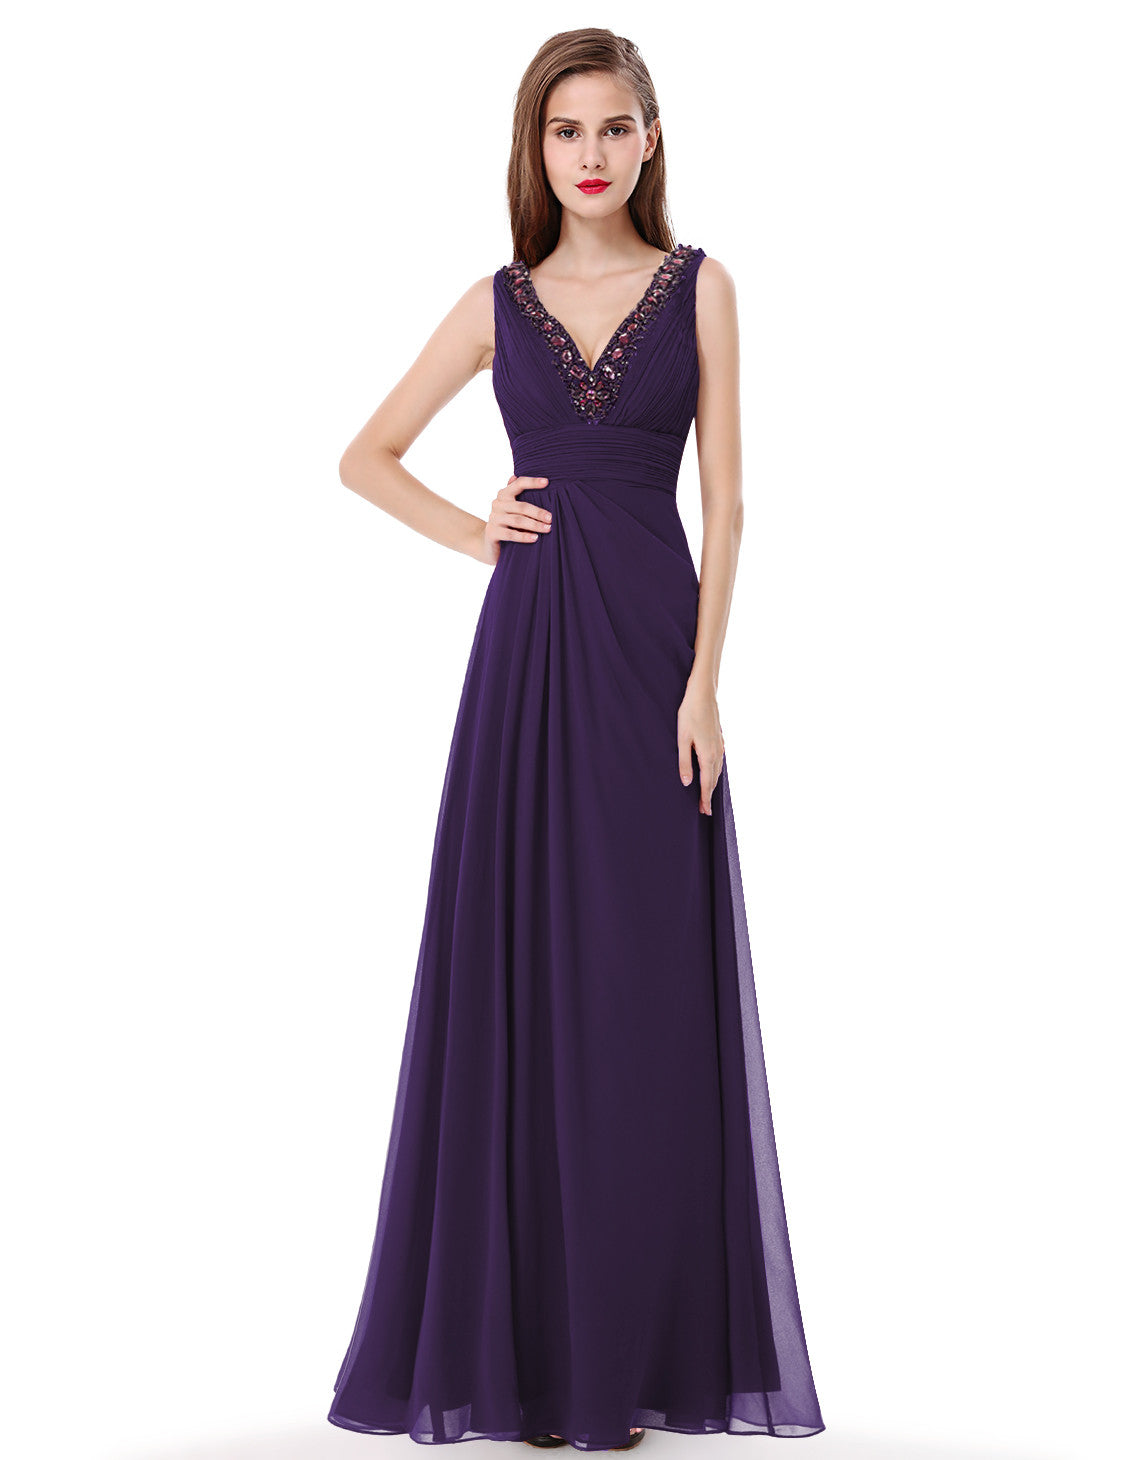 Obeige Sexy Purple Double V-neck Rhinestone Long Party Dress